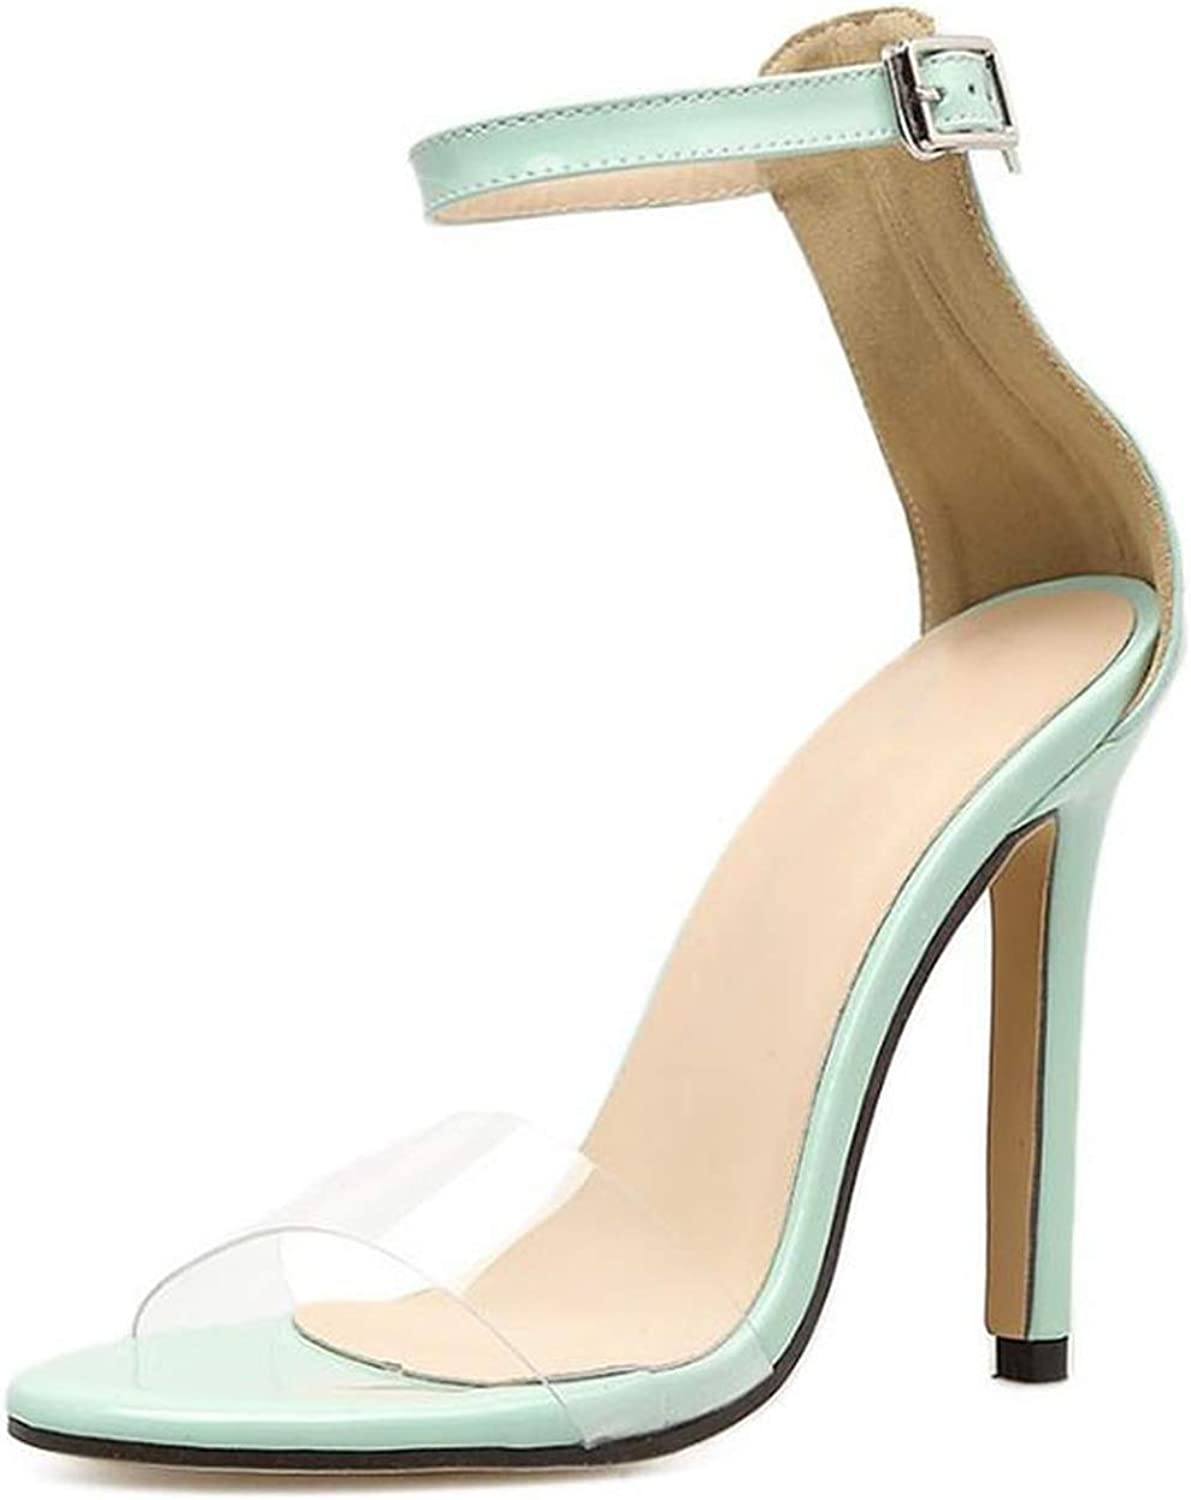 Houfeoans Youngs Sexy Fashion Super High Heels Sandals Candy color Thin Heel Party Office Ladies Sandals